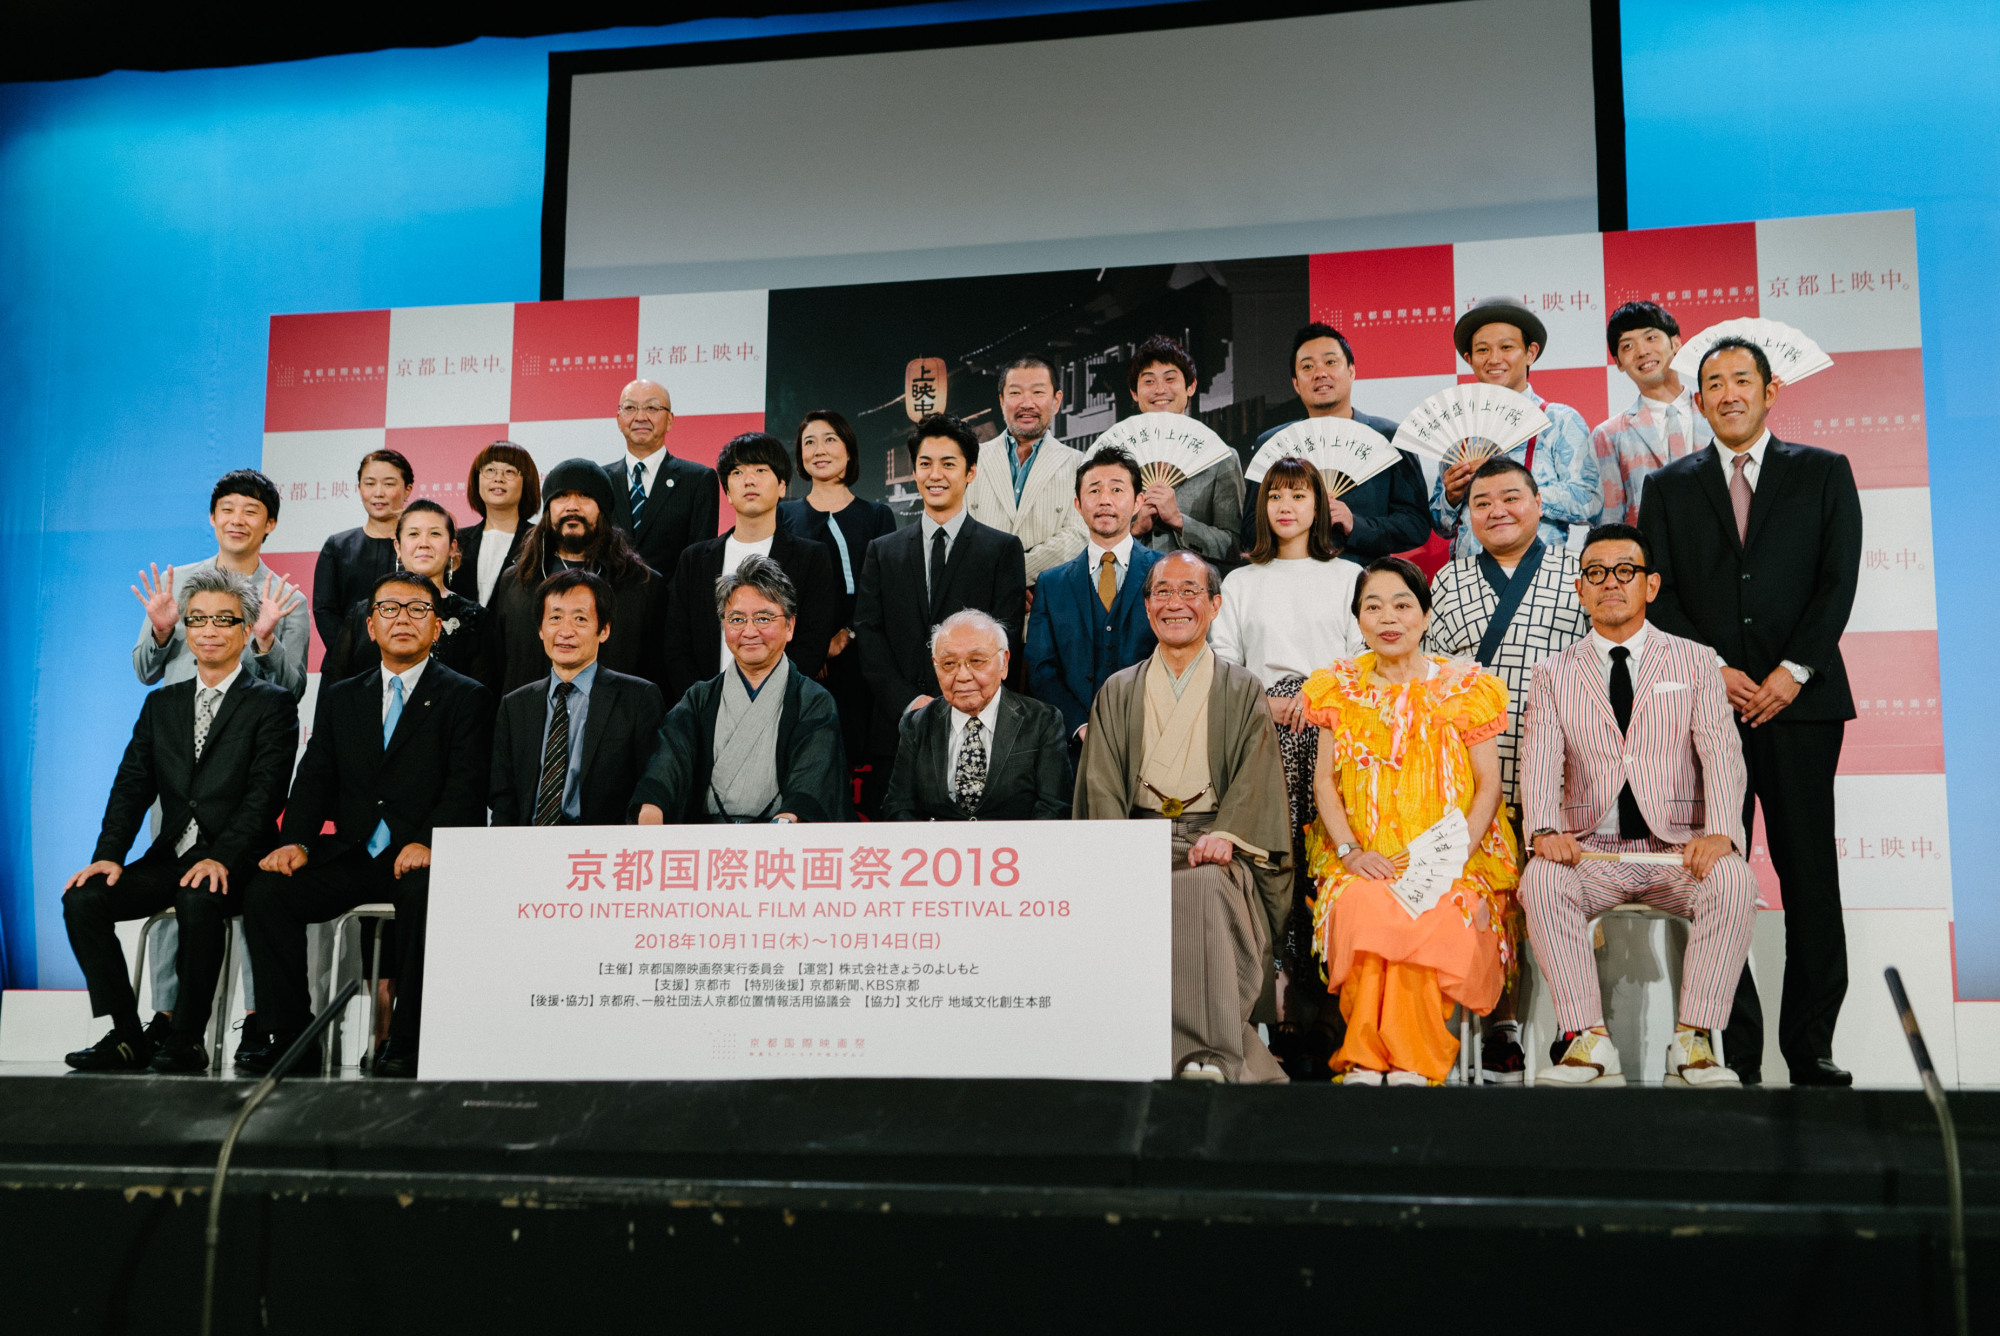 Rain, rain go away: The organizers of this year's Kyoto International Film and Art Festival take part in a press event.   MATT SCHLEY